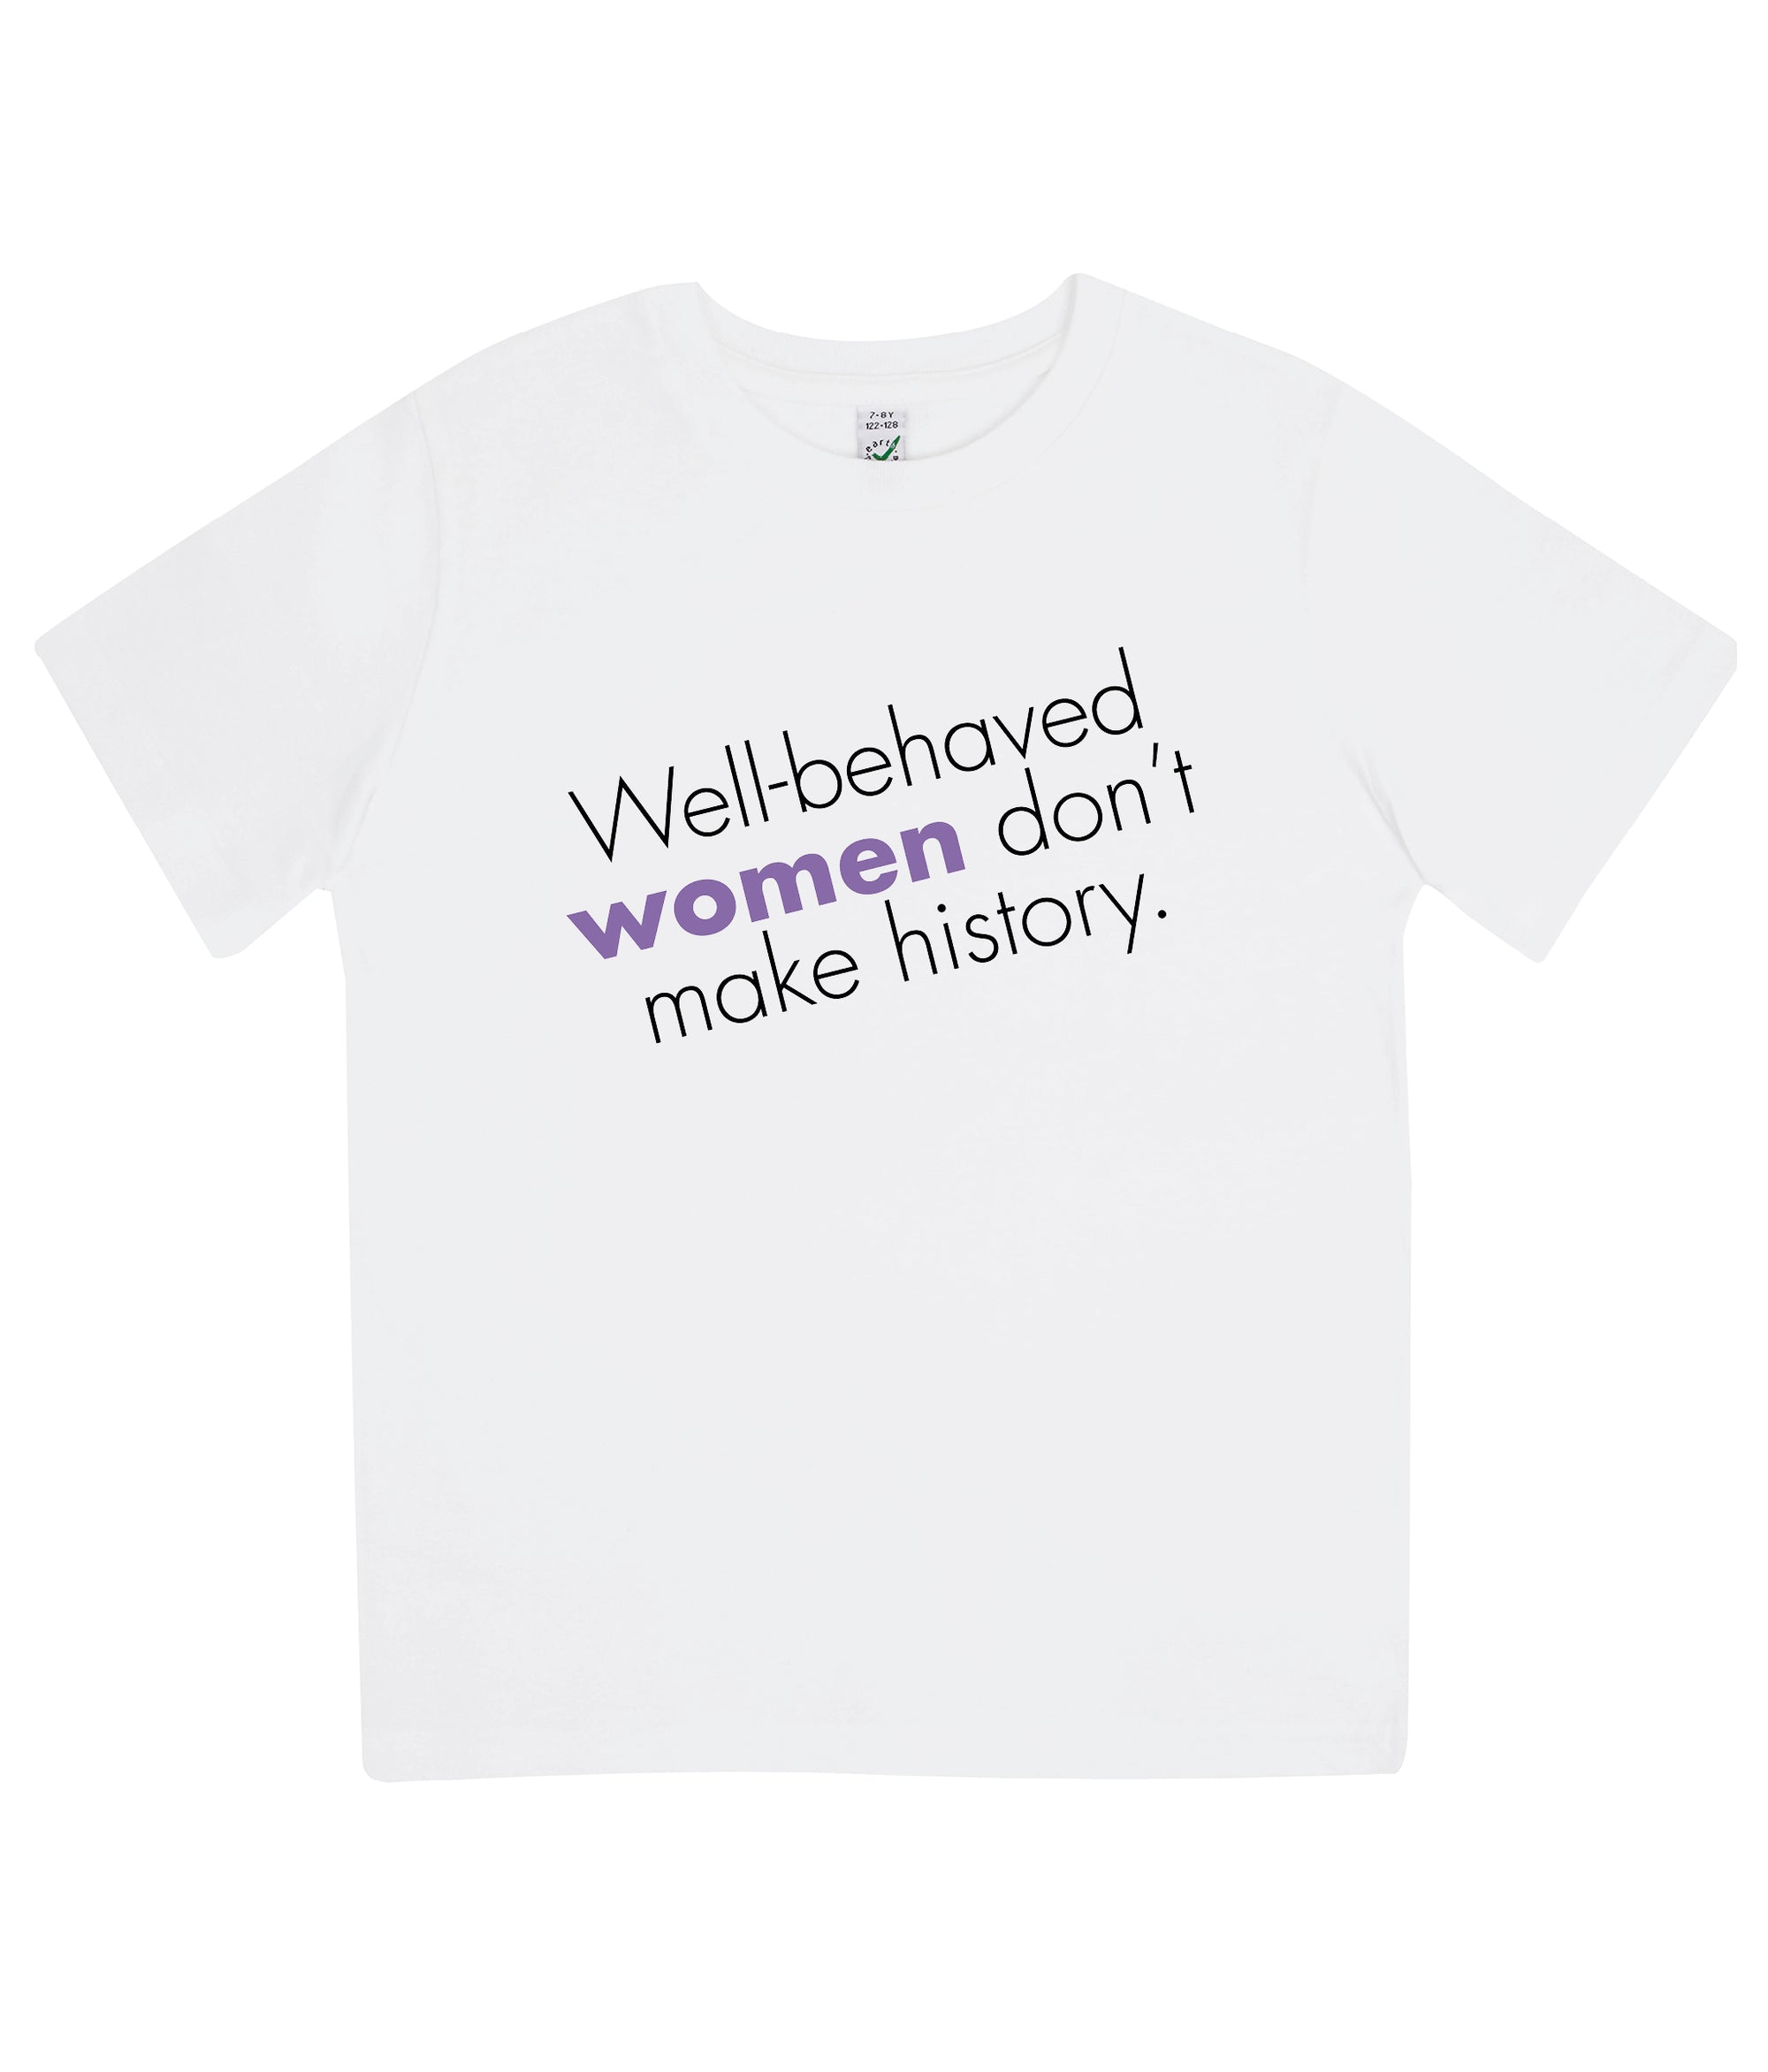 Well Behaved Women Don't Make History Kids Organic Feminist T Shirt Black